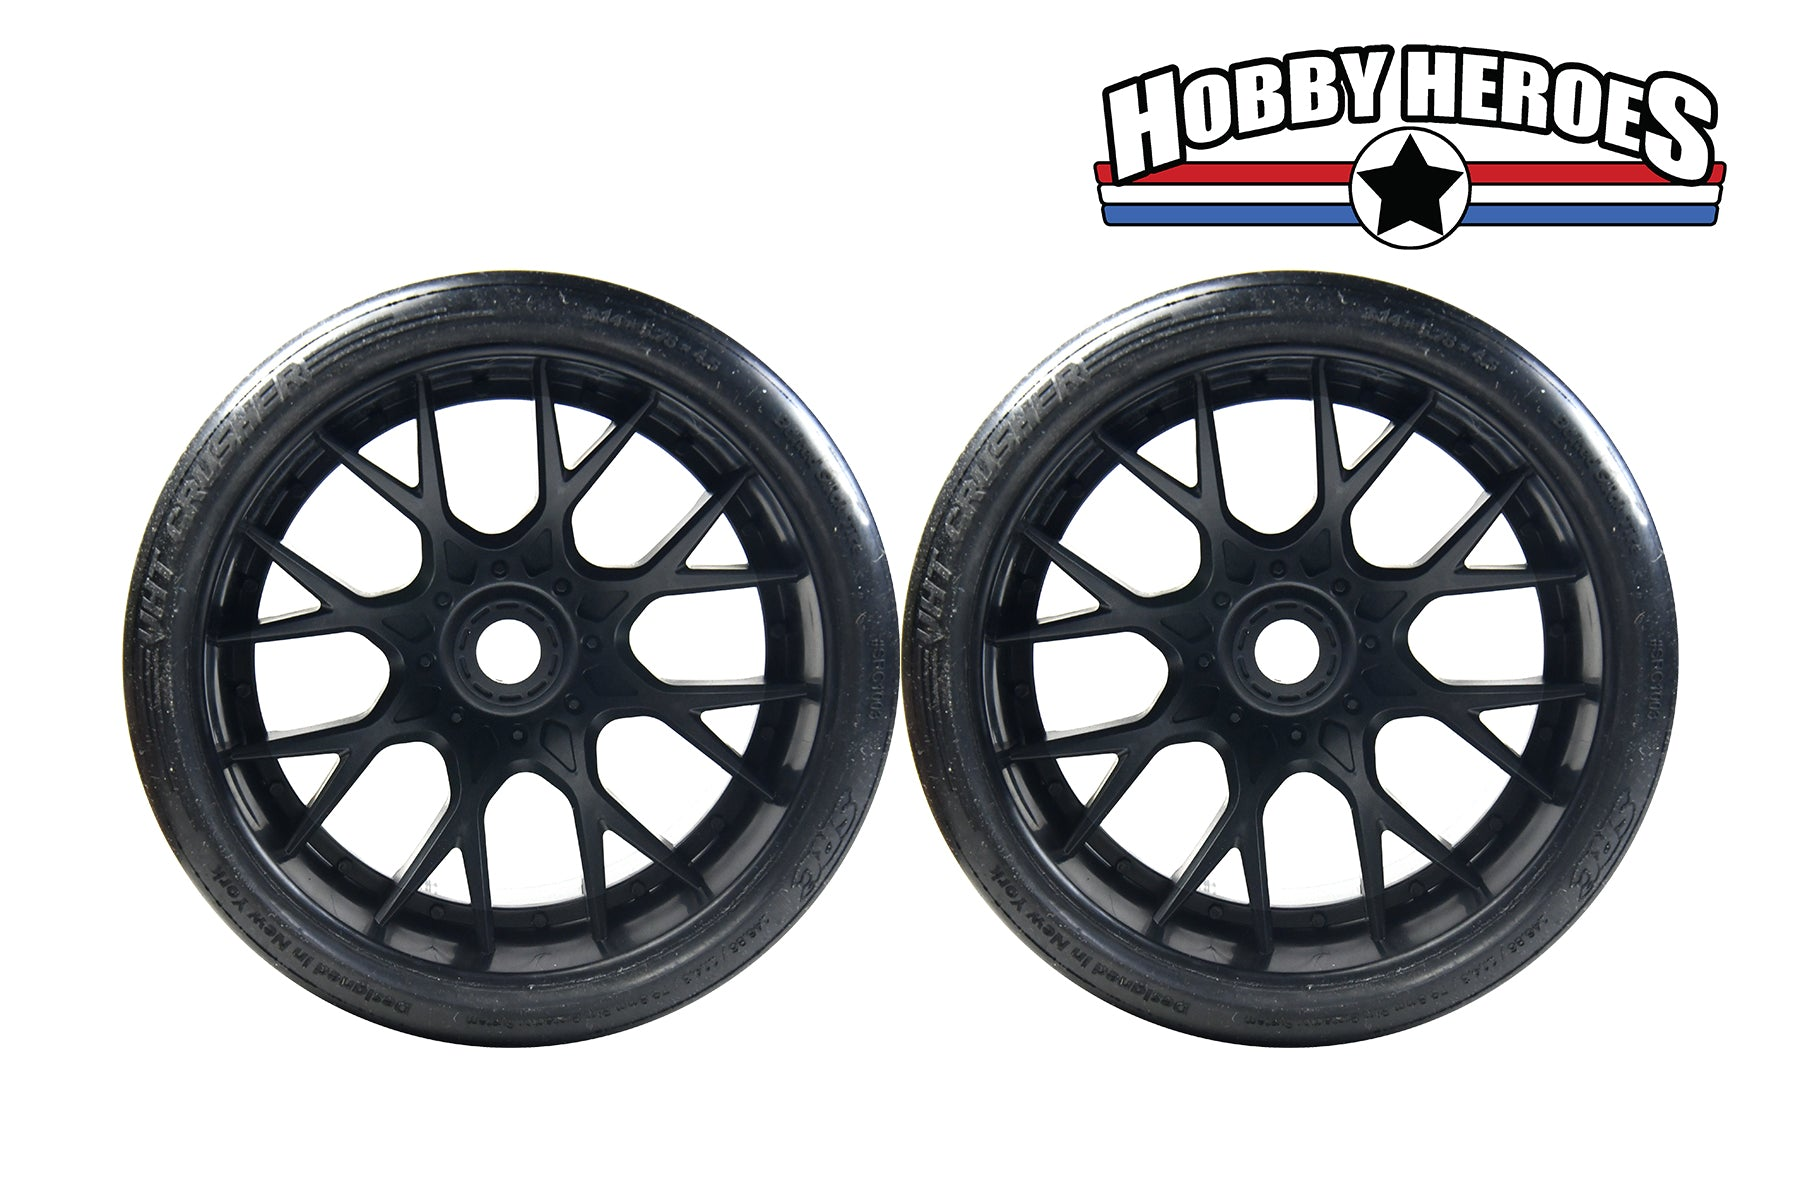 Sweep Monster Truck VHT Crusher Belted Tire on WHD Black Wheel New SWSRC1003B